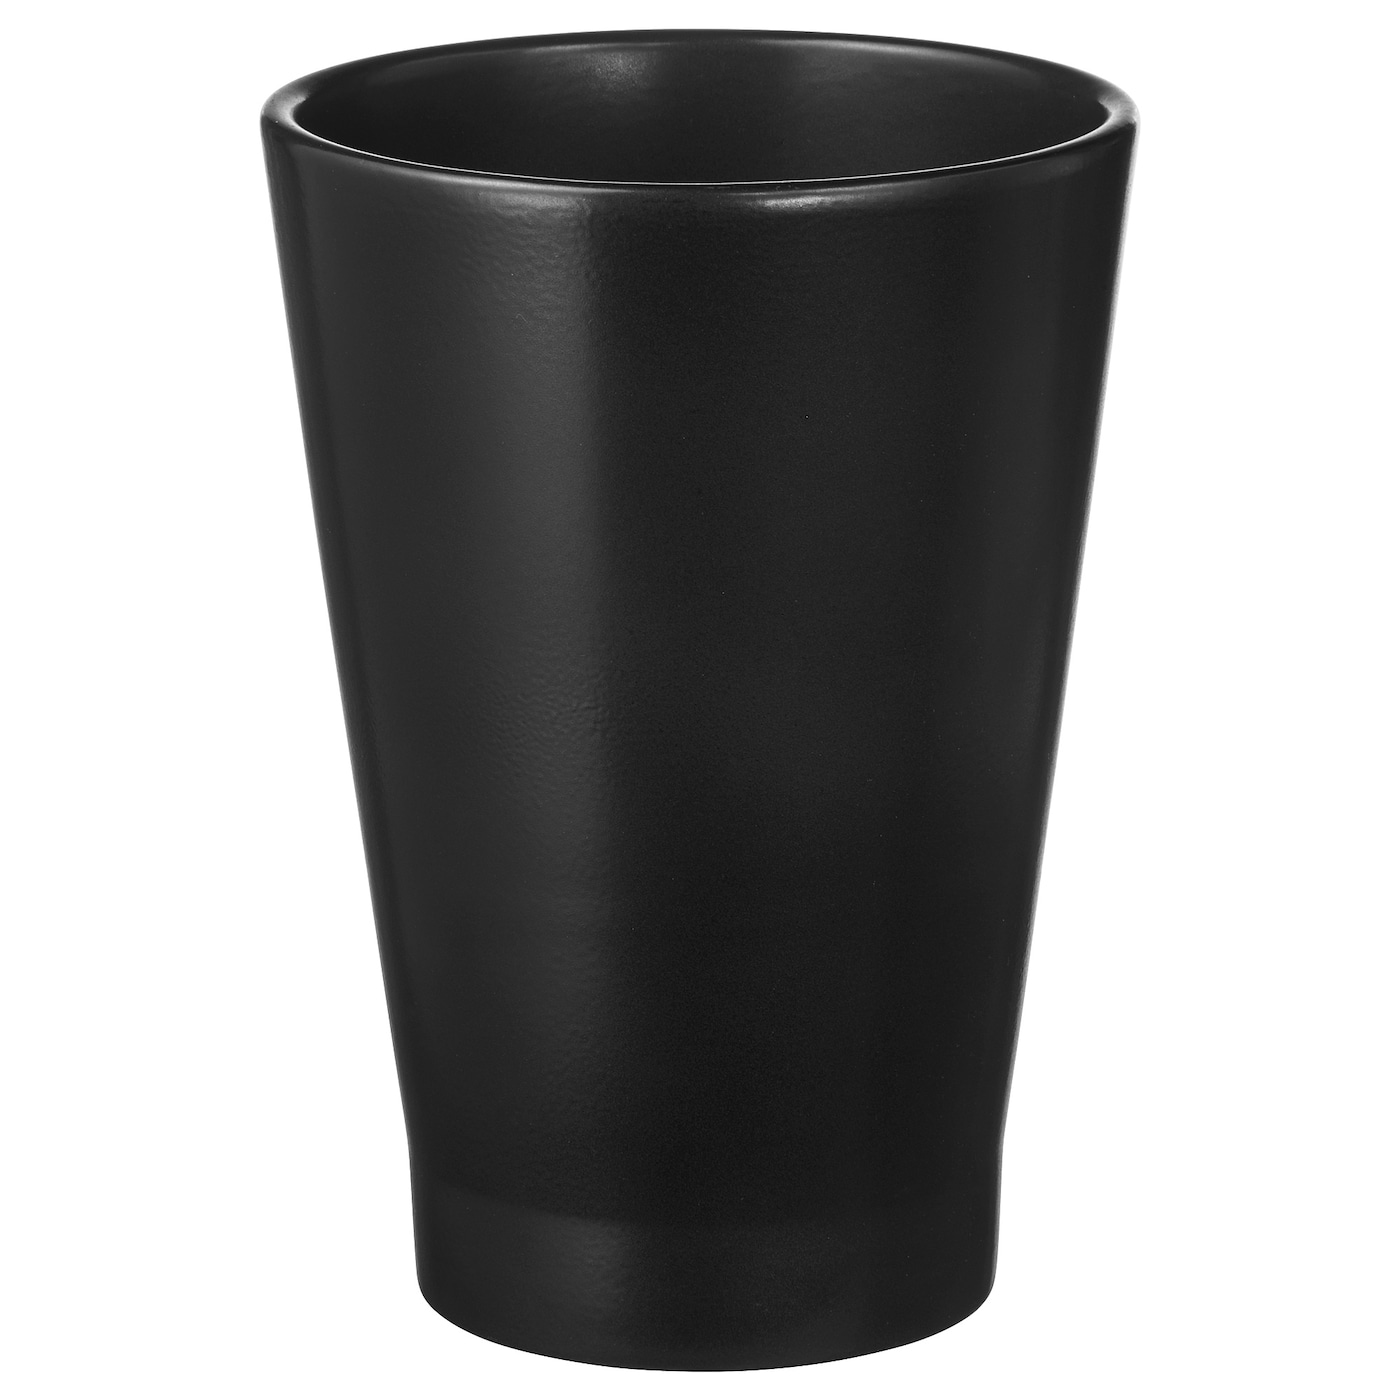 Papaja plant pot black 12 x 19 cm ikea for Black planters ikea